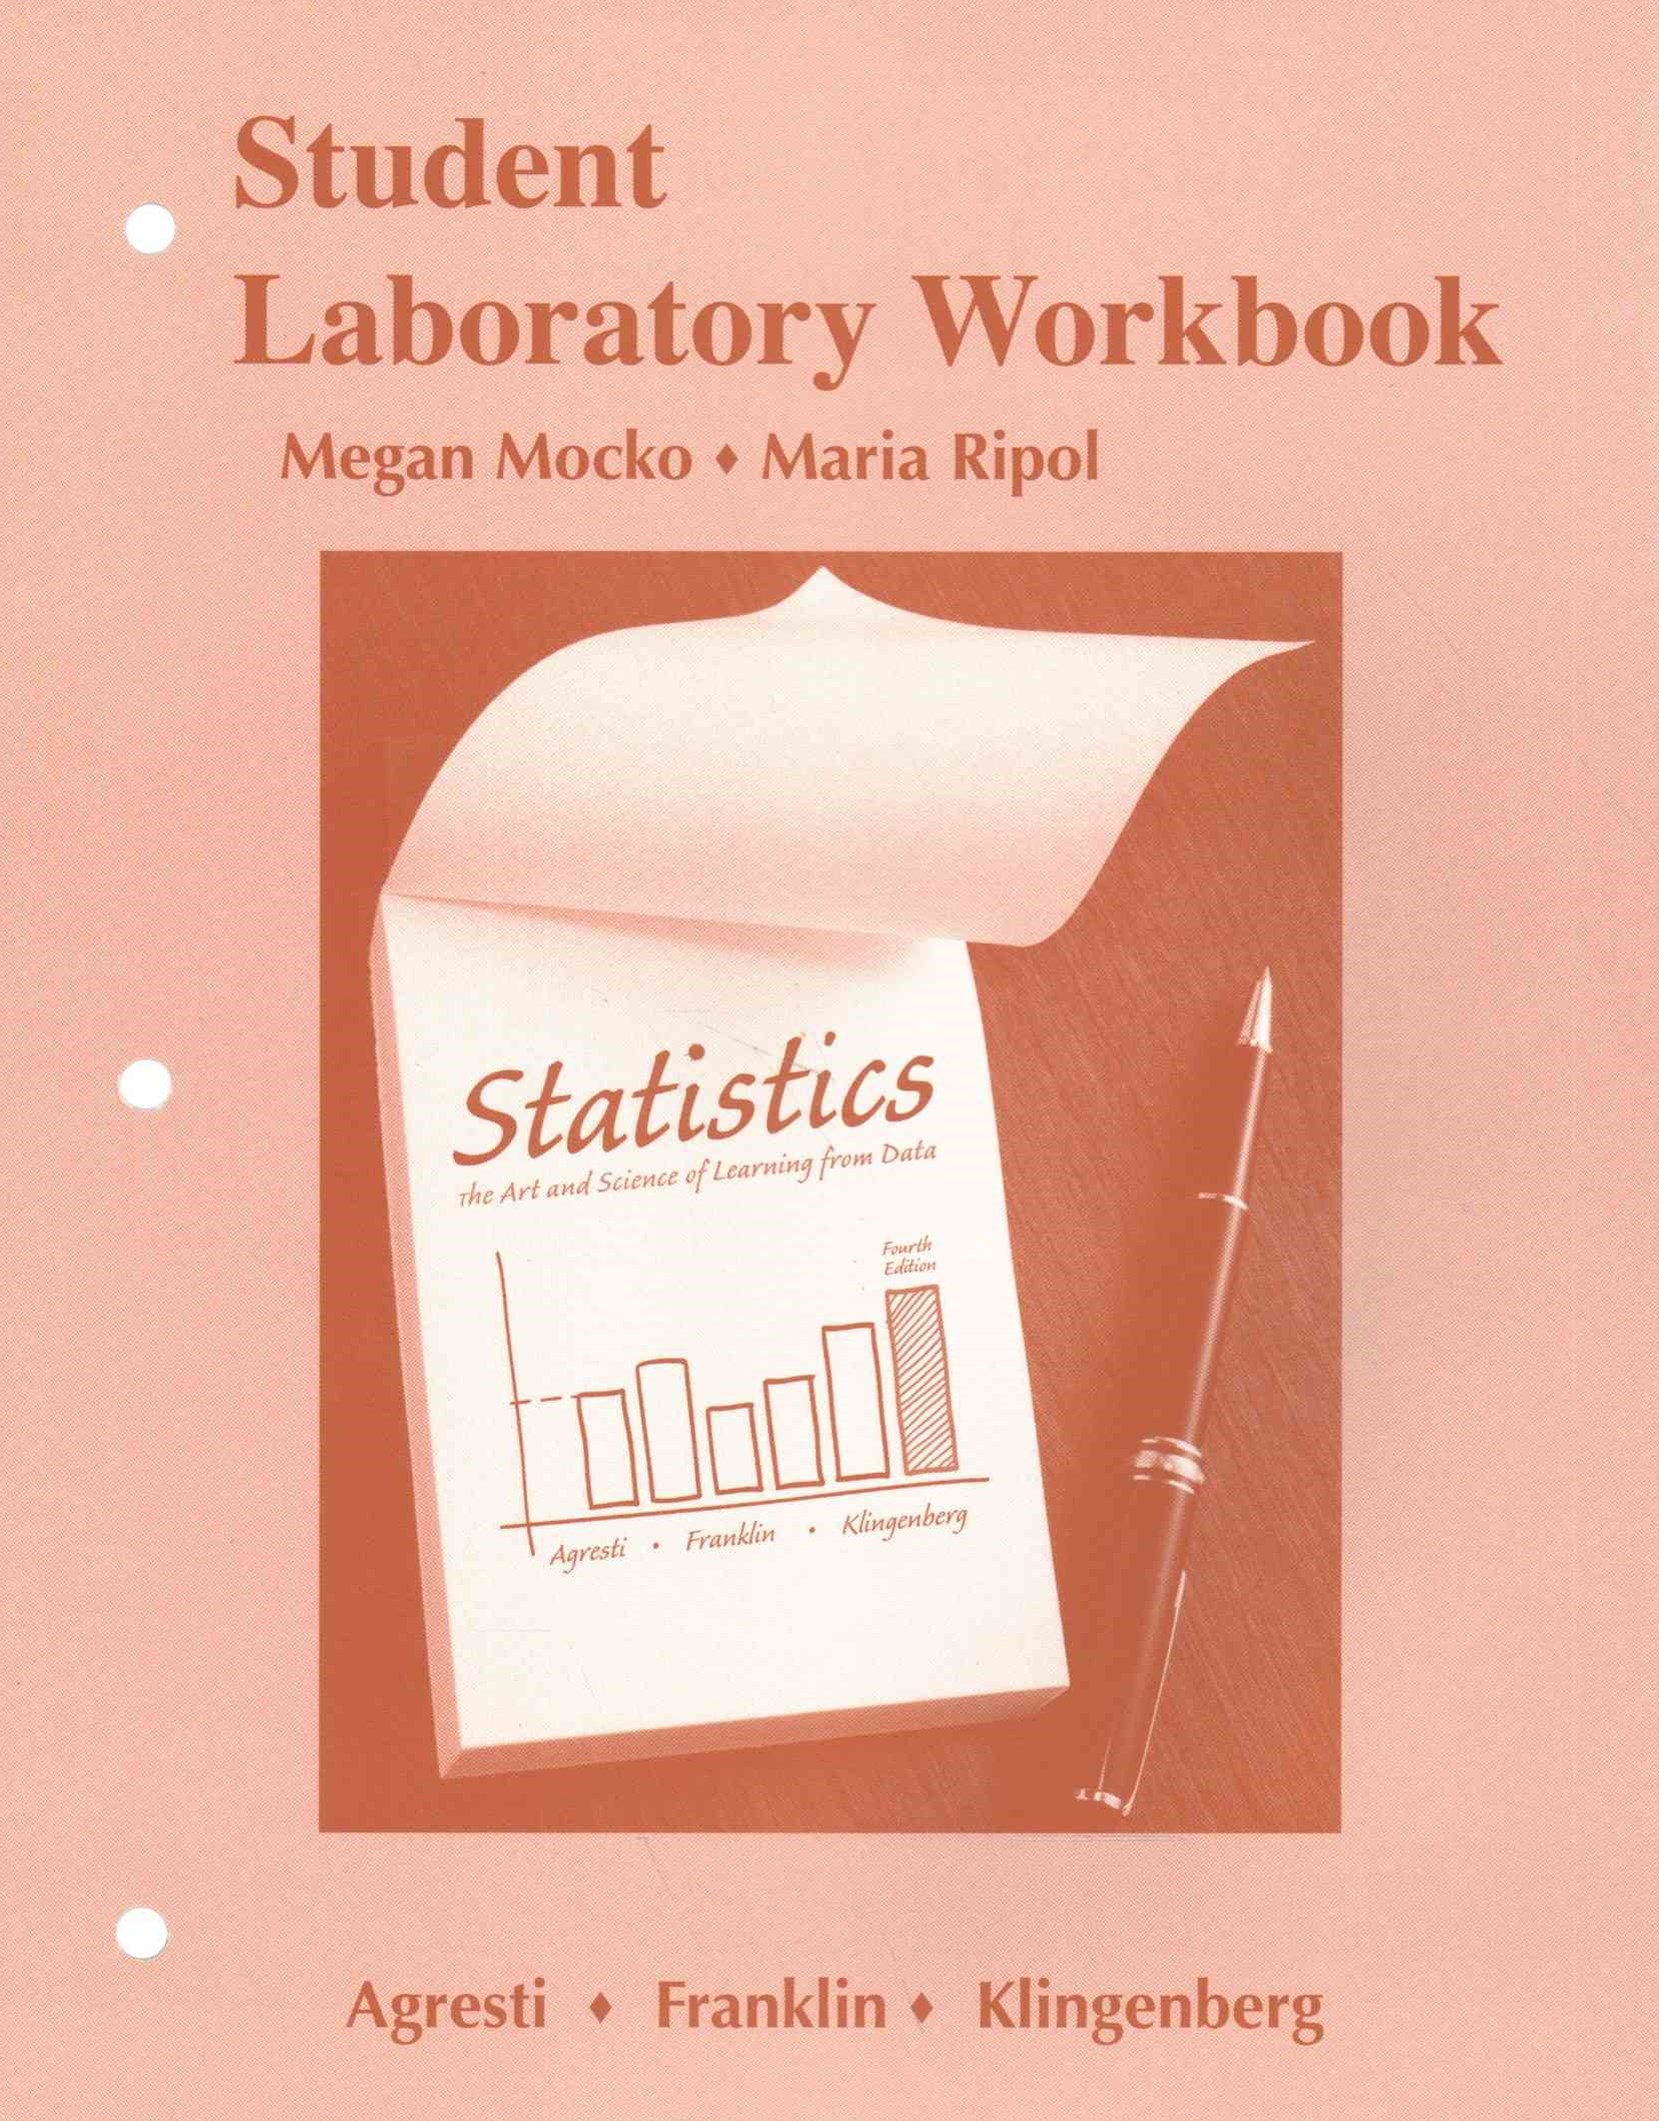 Student Laboratory Workbook for Statistics